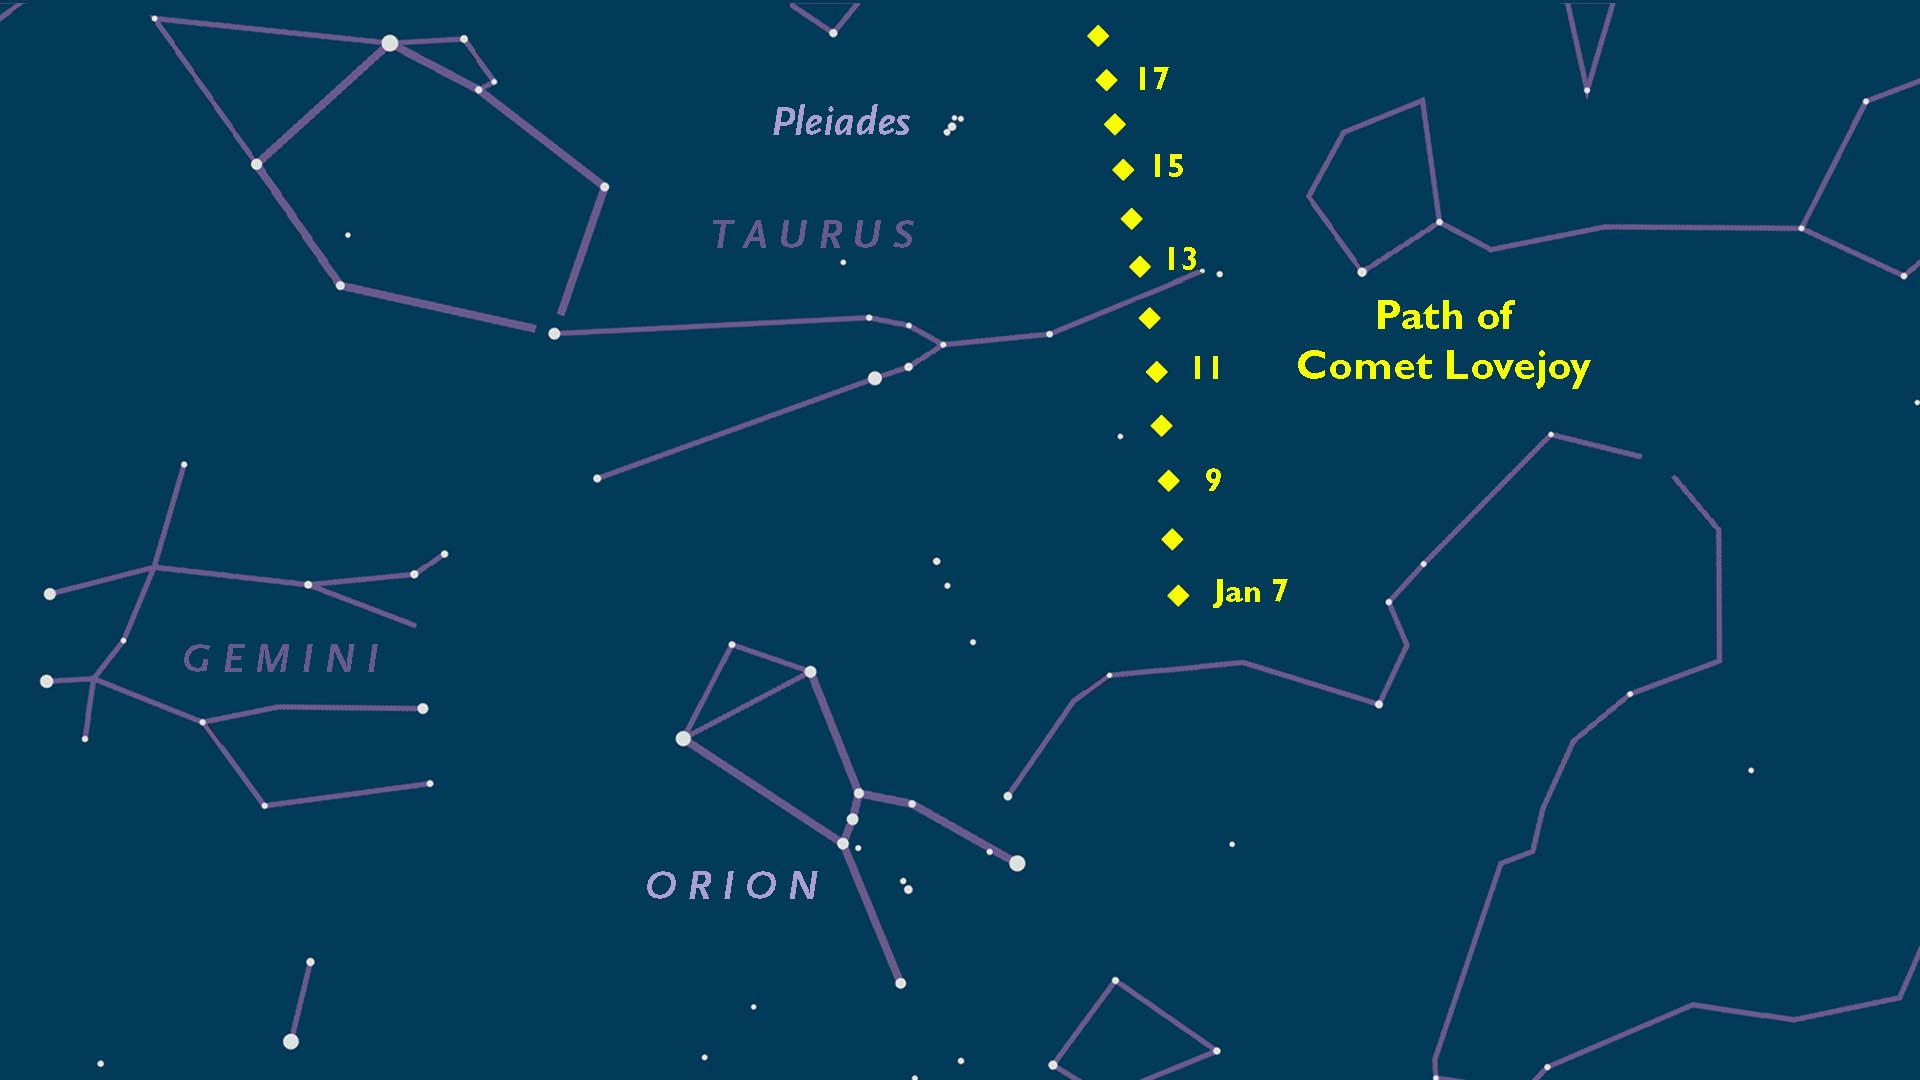 Path of Comet Lovejoy